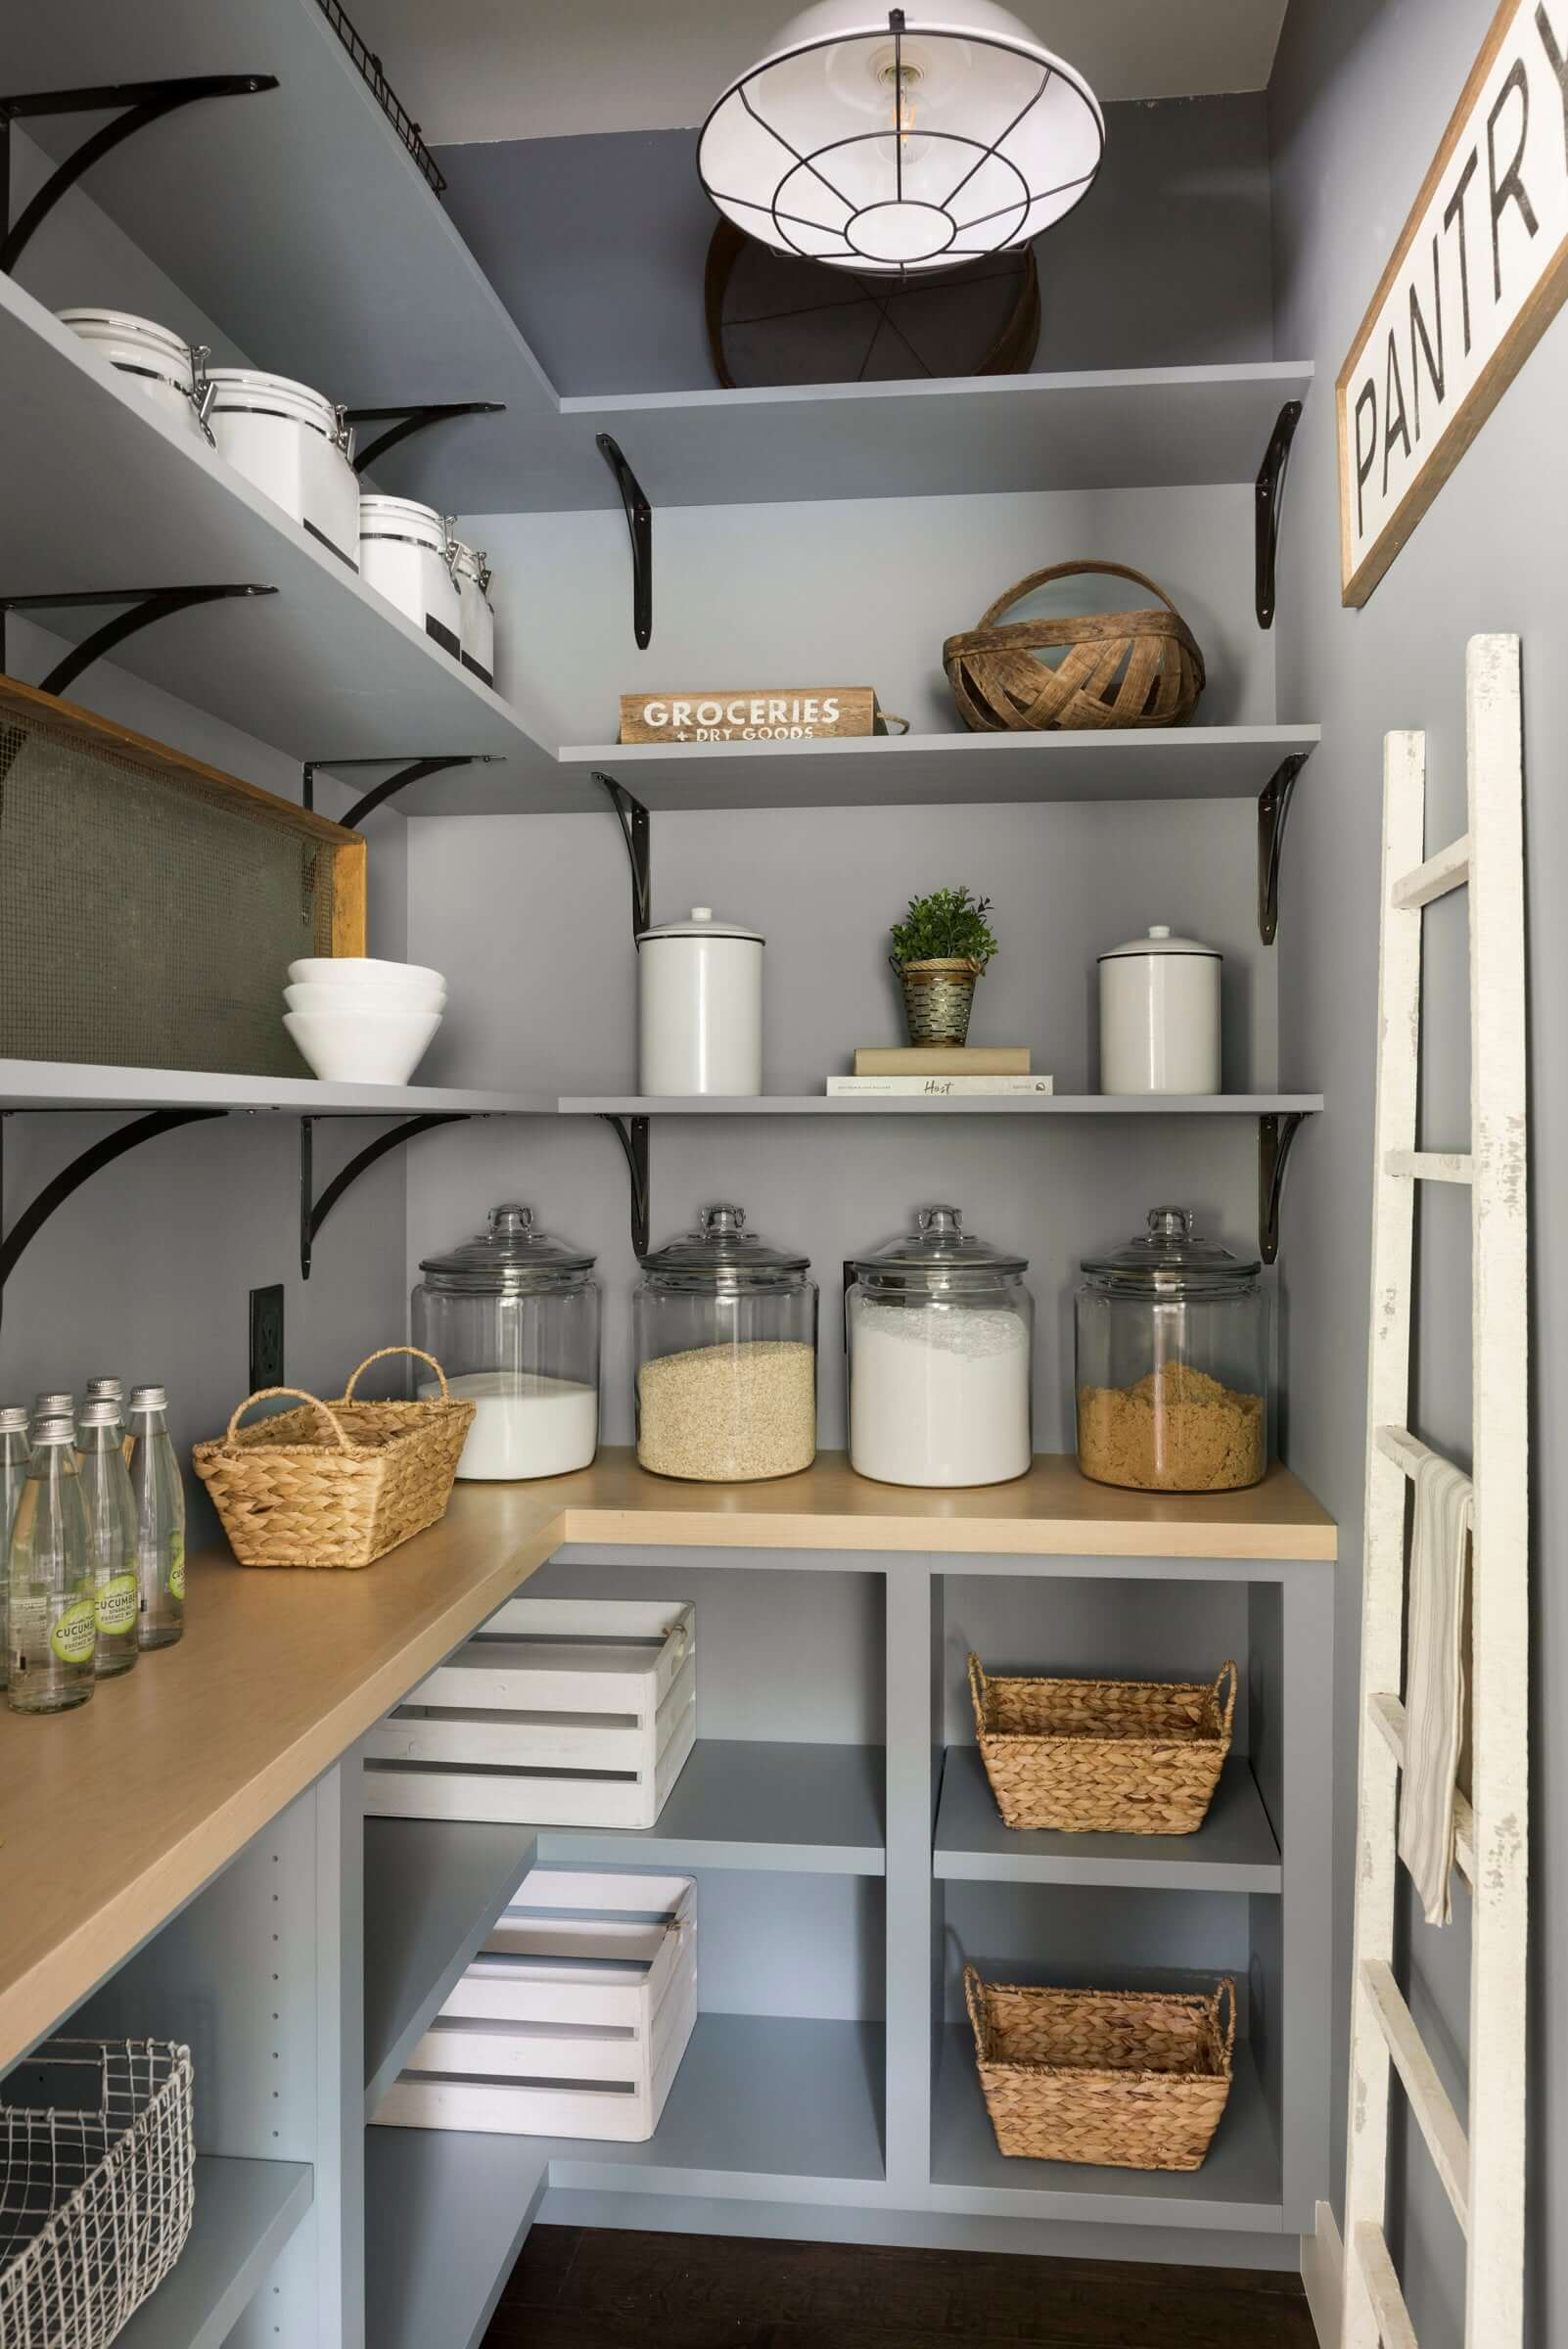 24 Best Pantry Shelving Ideas and Designs for 2020